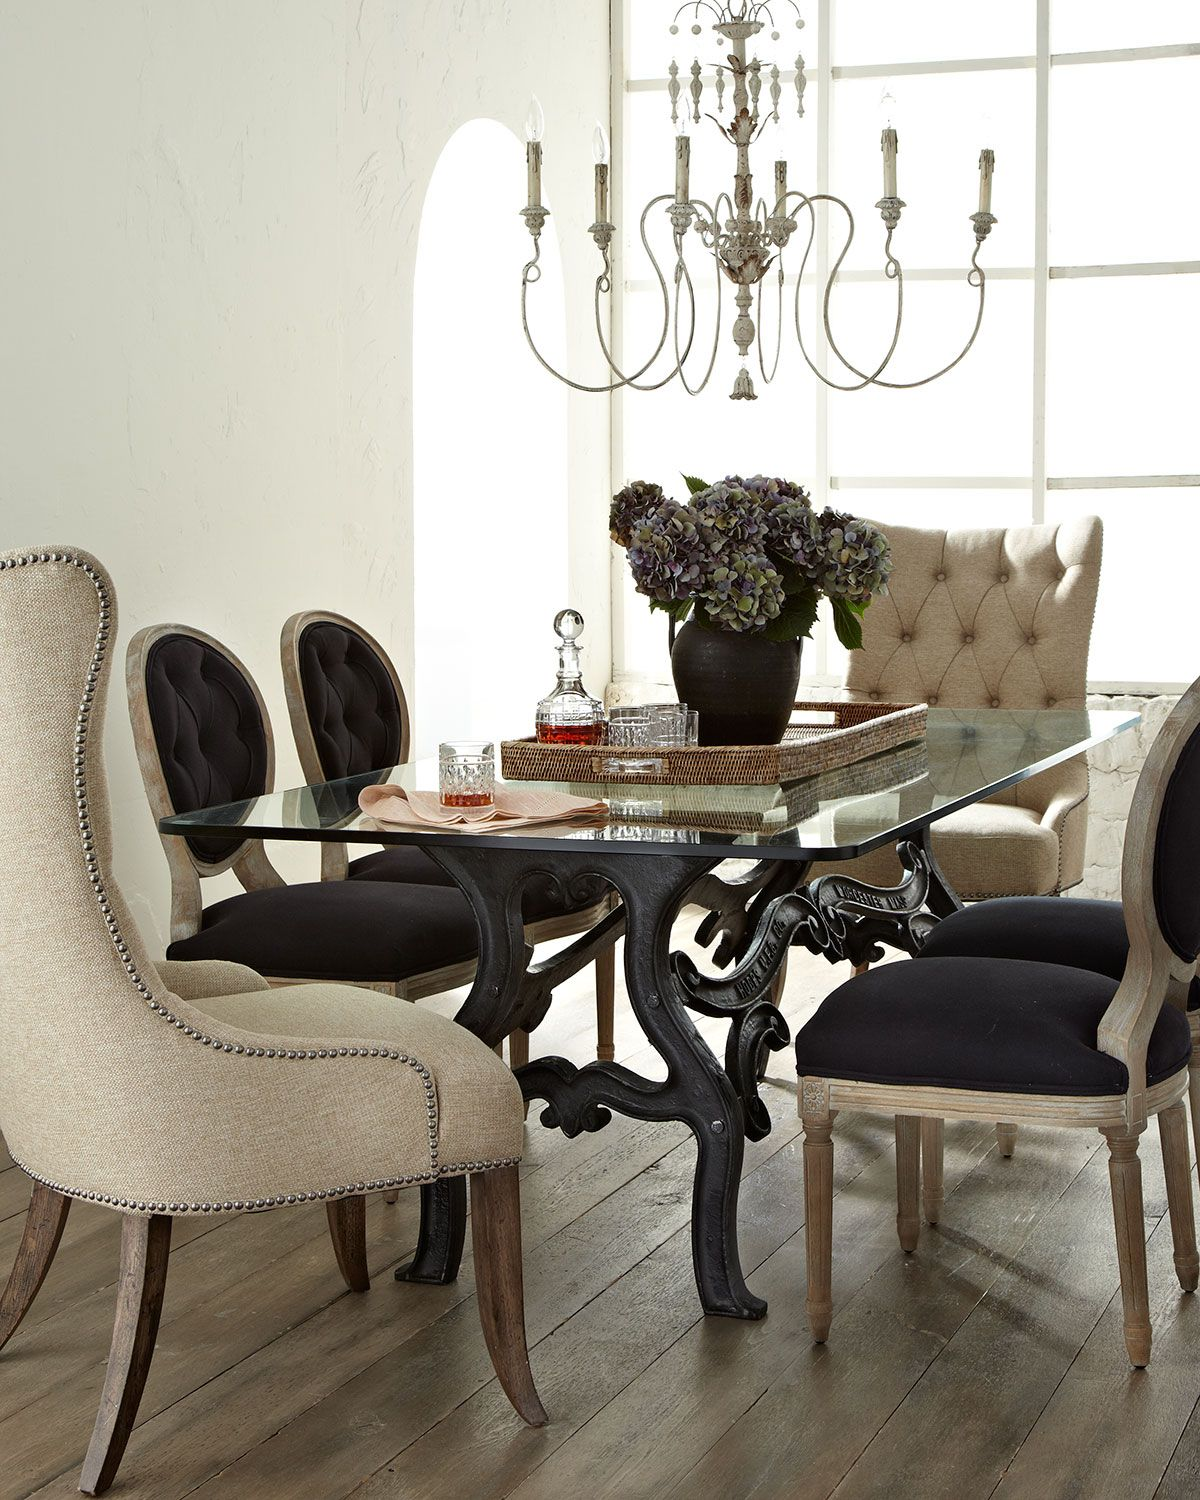 Stockard Dining Table Donabella Tufted Chairs u0026